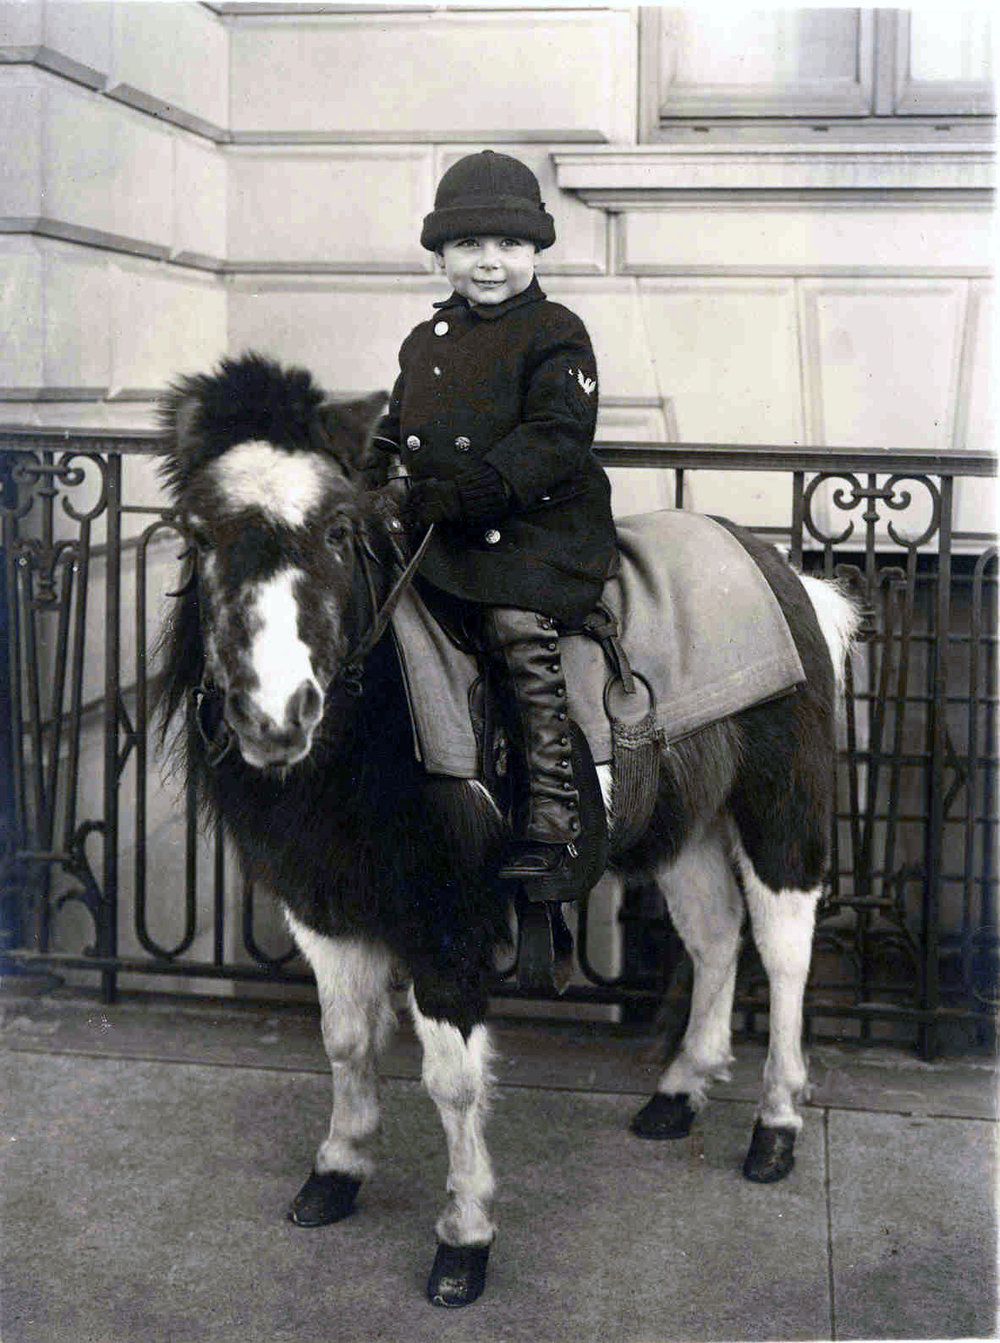 Edward Stuart Tishman, 1927, His equestrian life already beginning at Age 4.